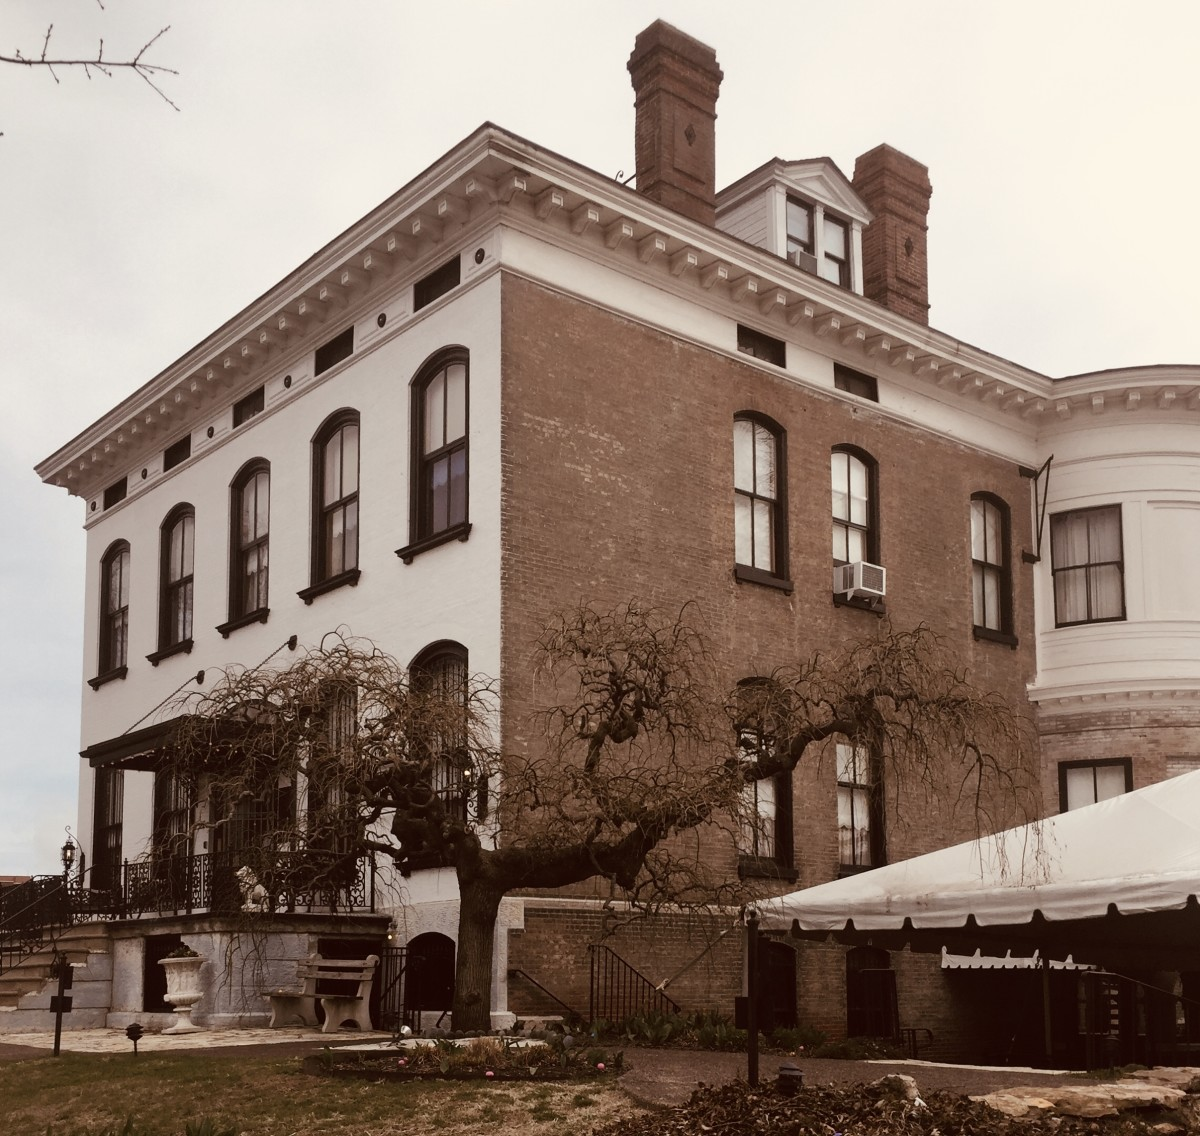 Over time, the Lemp family inexplicably suffered a string of suicides and mysterious deaths which, along with Prohibition, led to the gradual decline of their brewery empire.